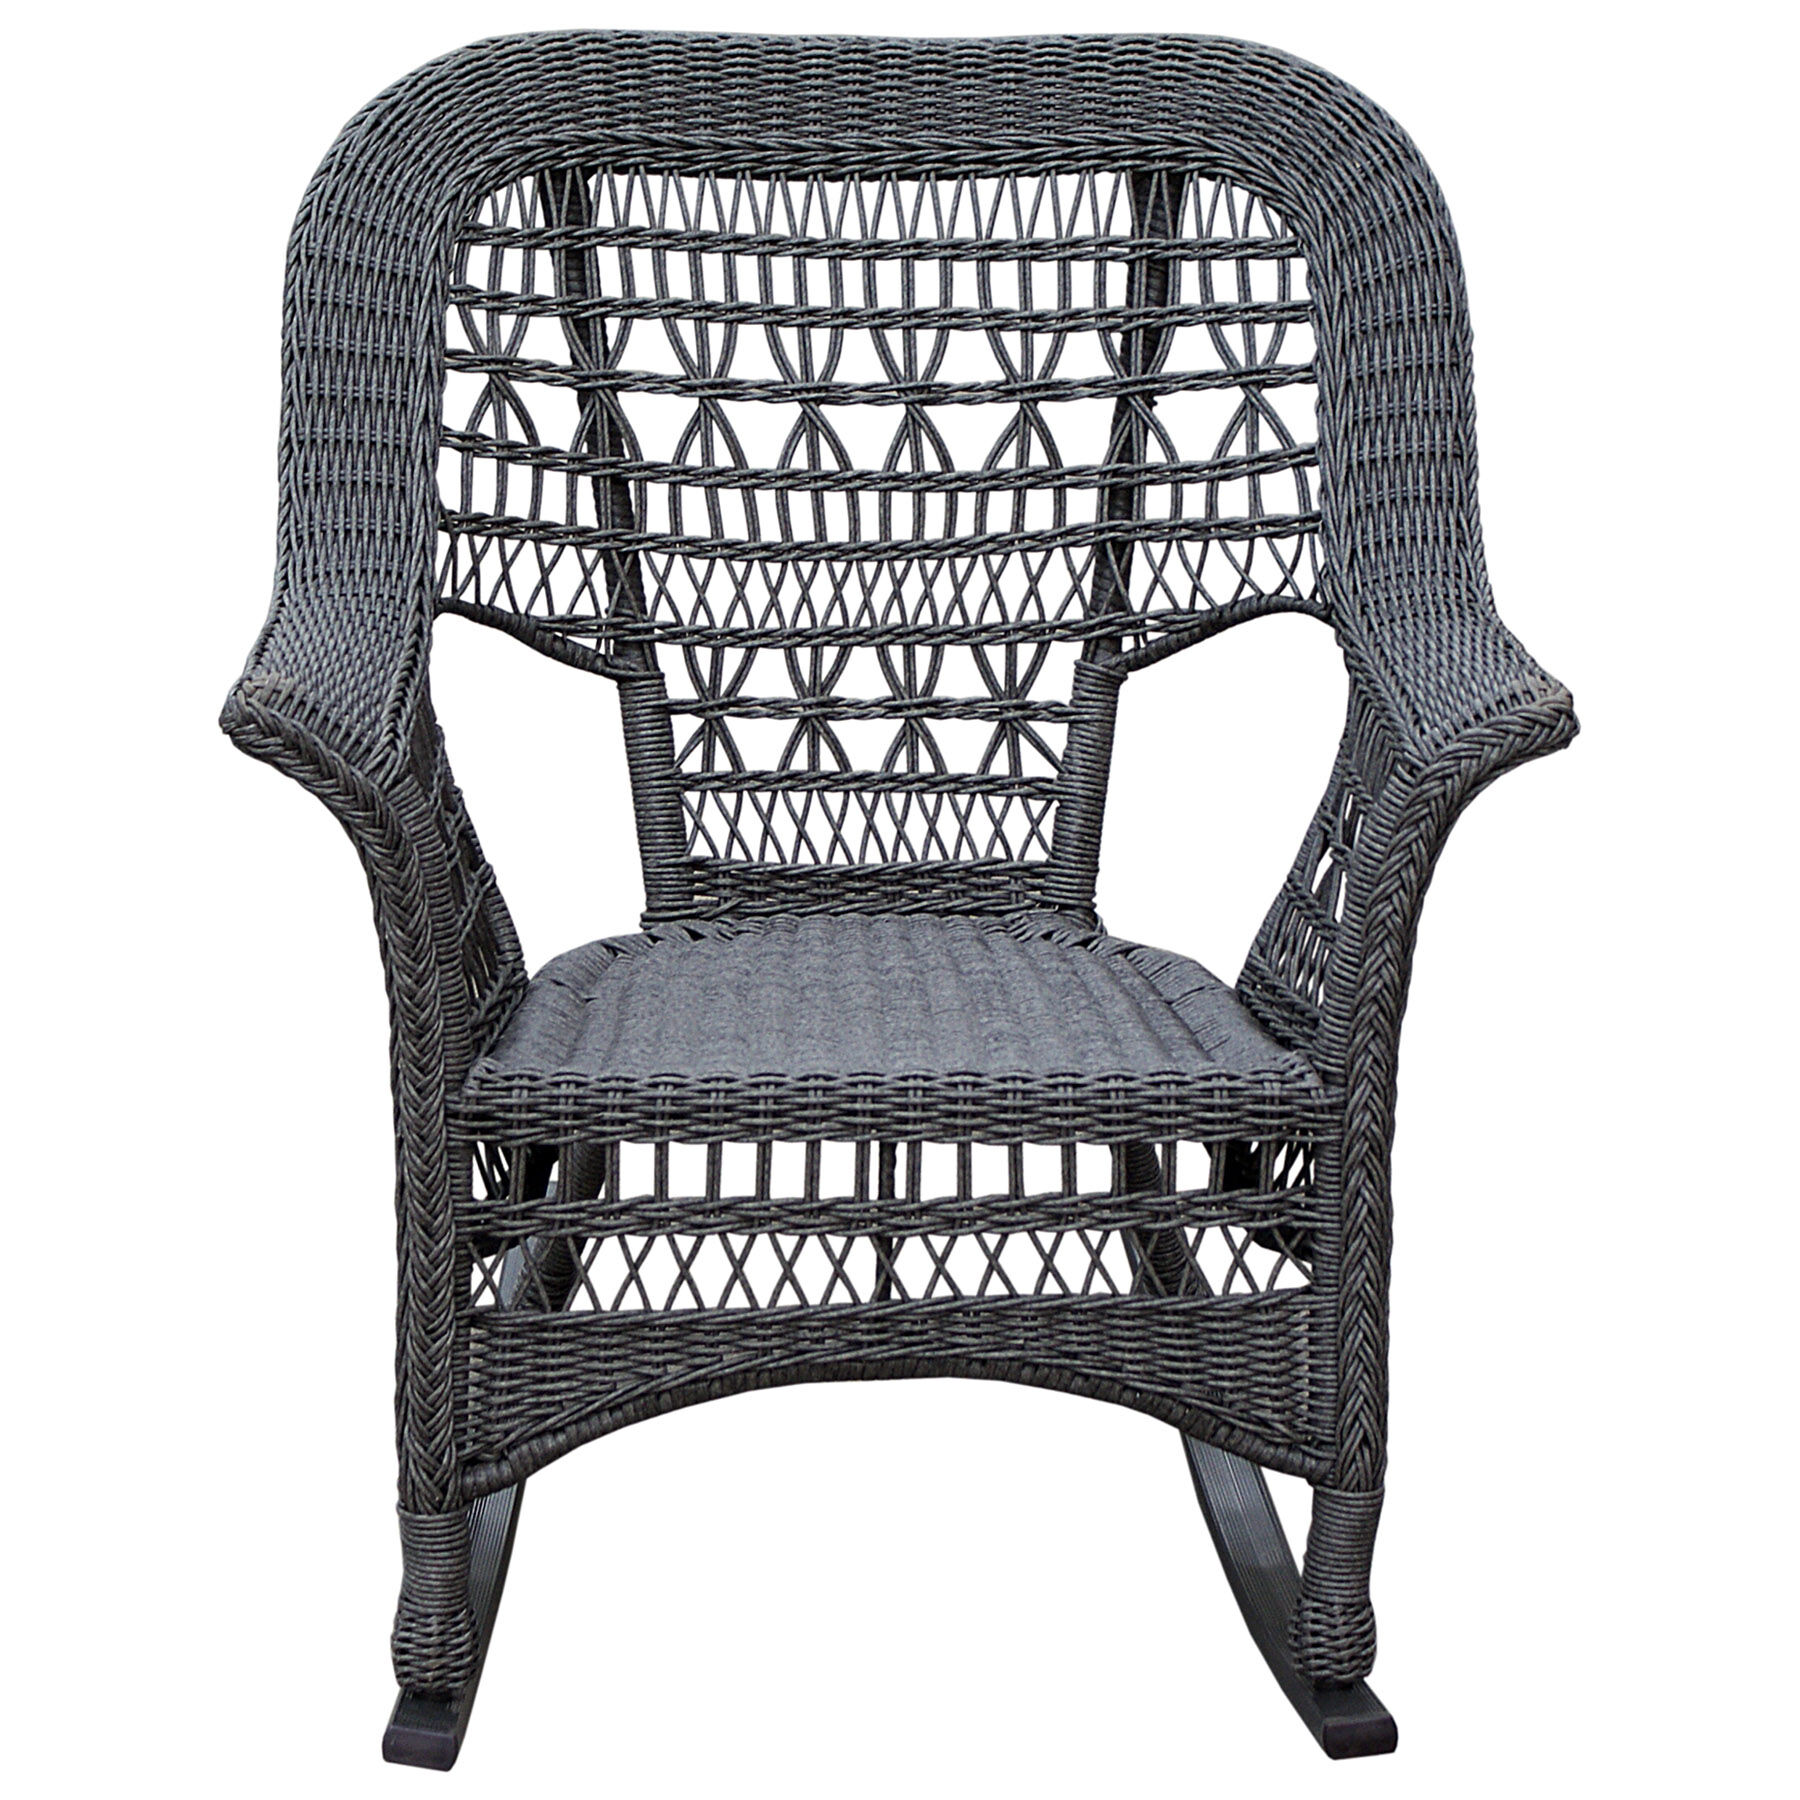 Black Wicker Rocking Chairs Wicker Rocking Chair Grey At Home